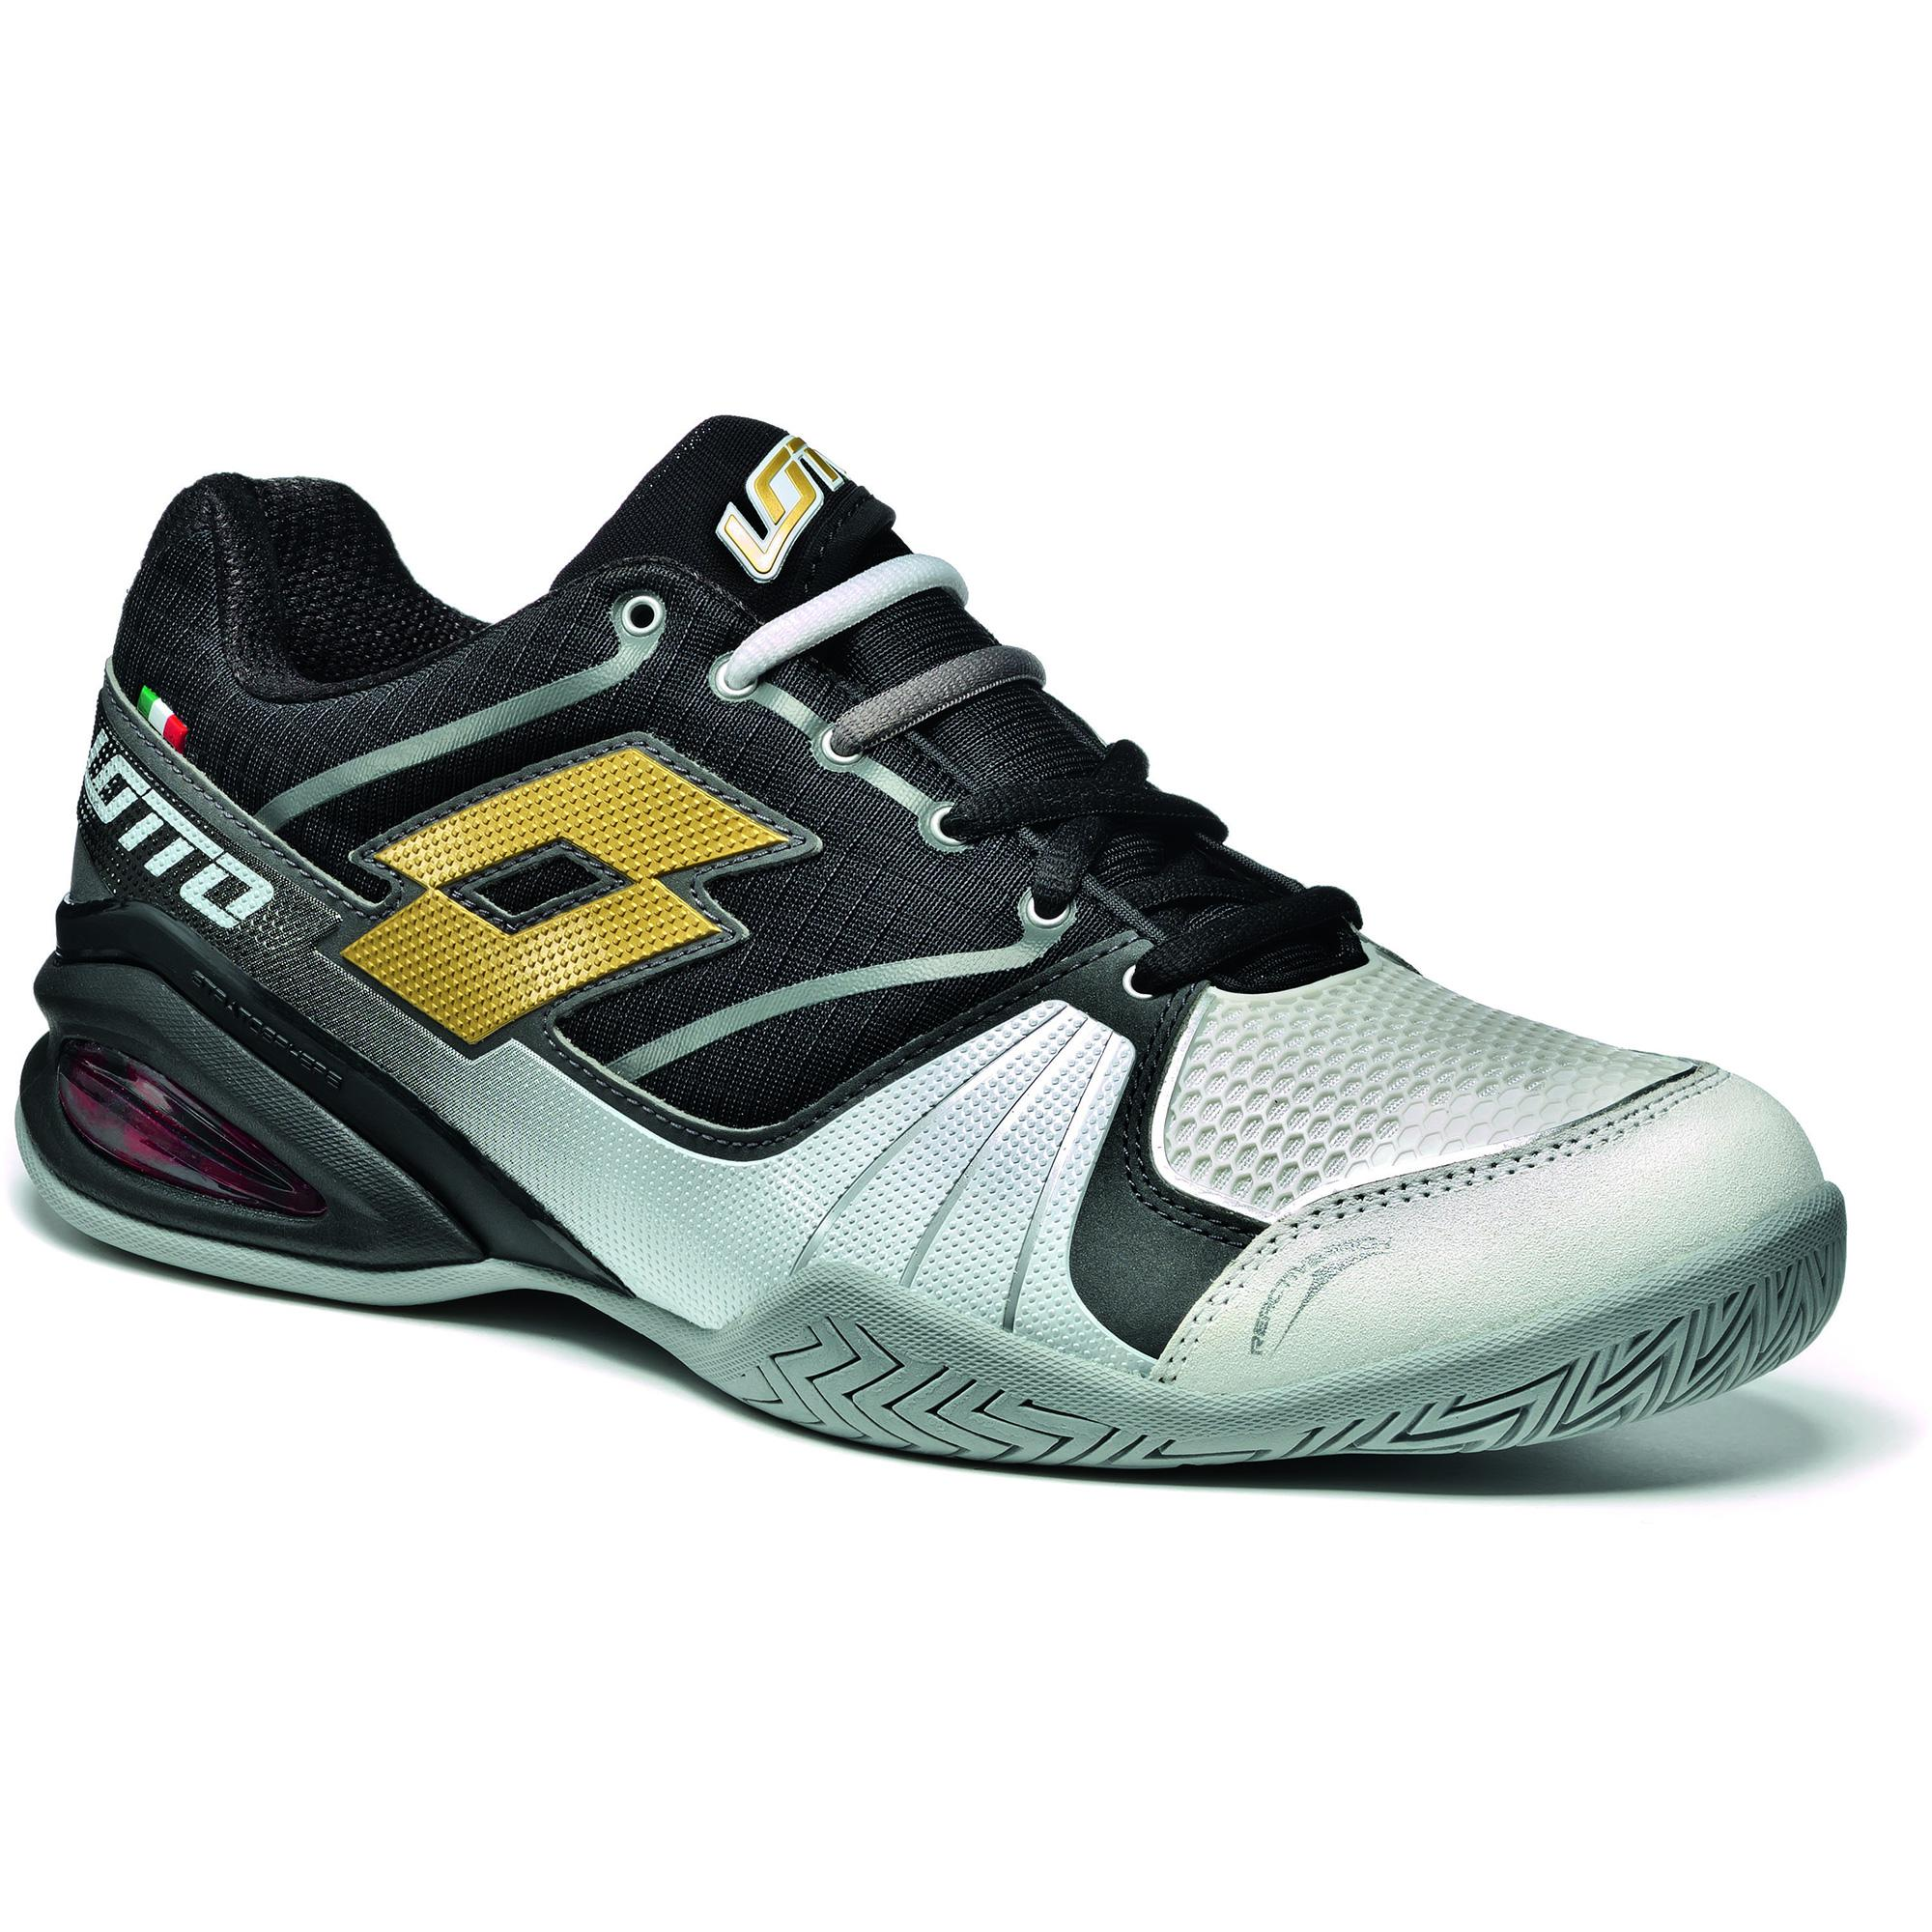 Mens Stratosphere Speed Tennis Shoes Lotto 8GuZCF